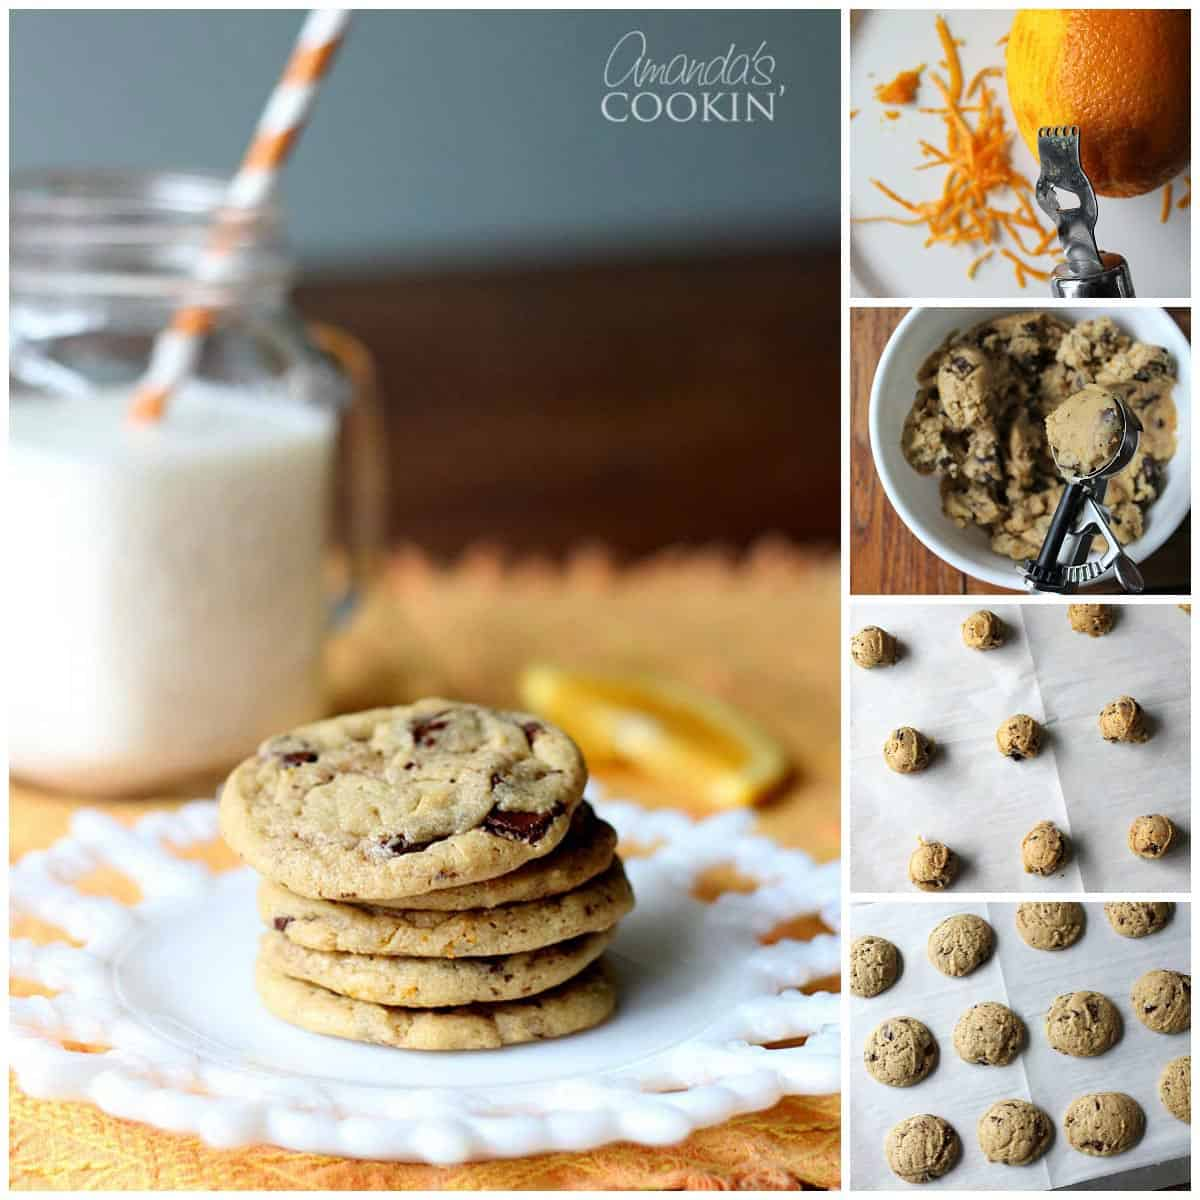 Photos of the steps to make orange chocolate chip cookies.